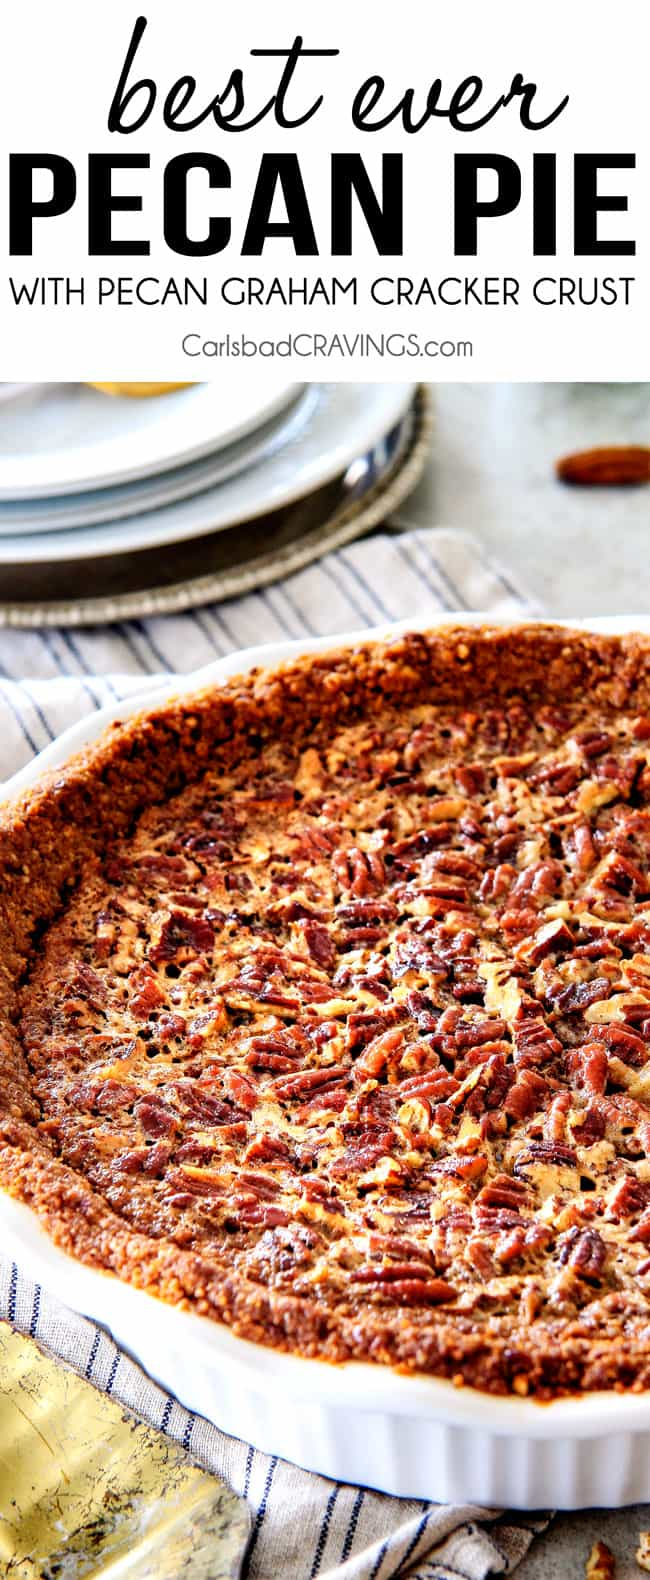 Pecan Pie close up.